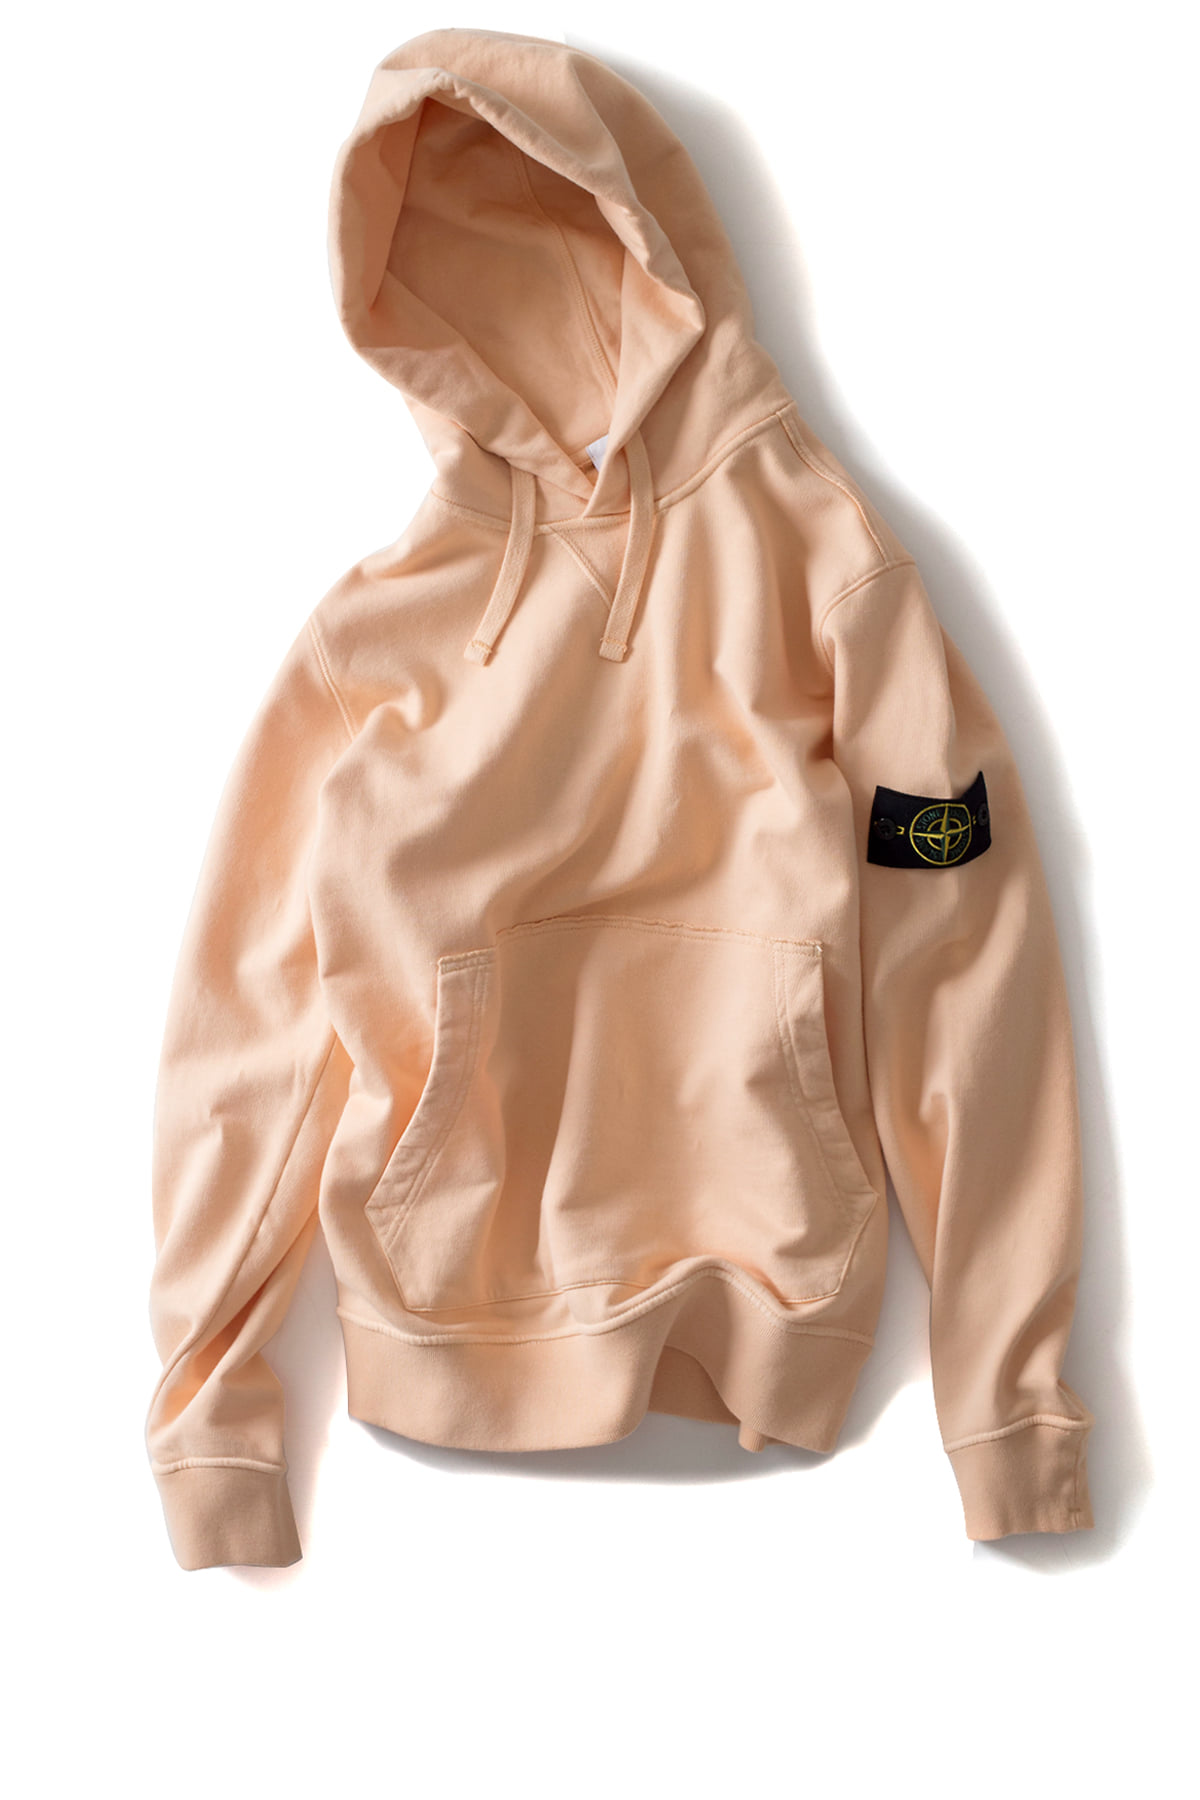 Stone Island : GARMENT DYED POPOVER HOODY (Salmon Pink)